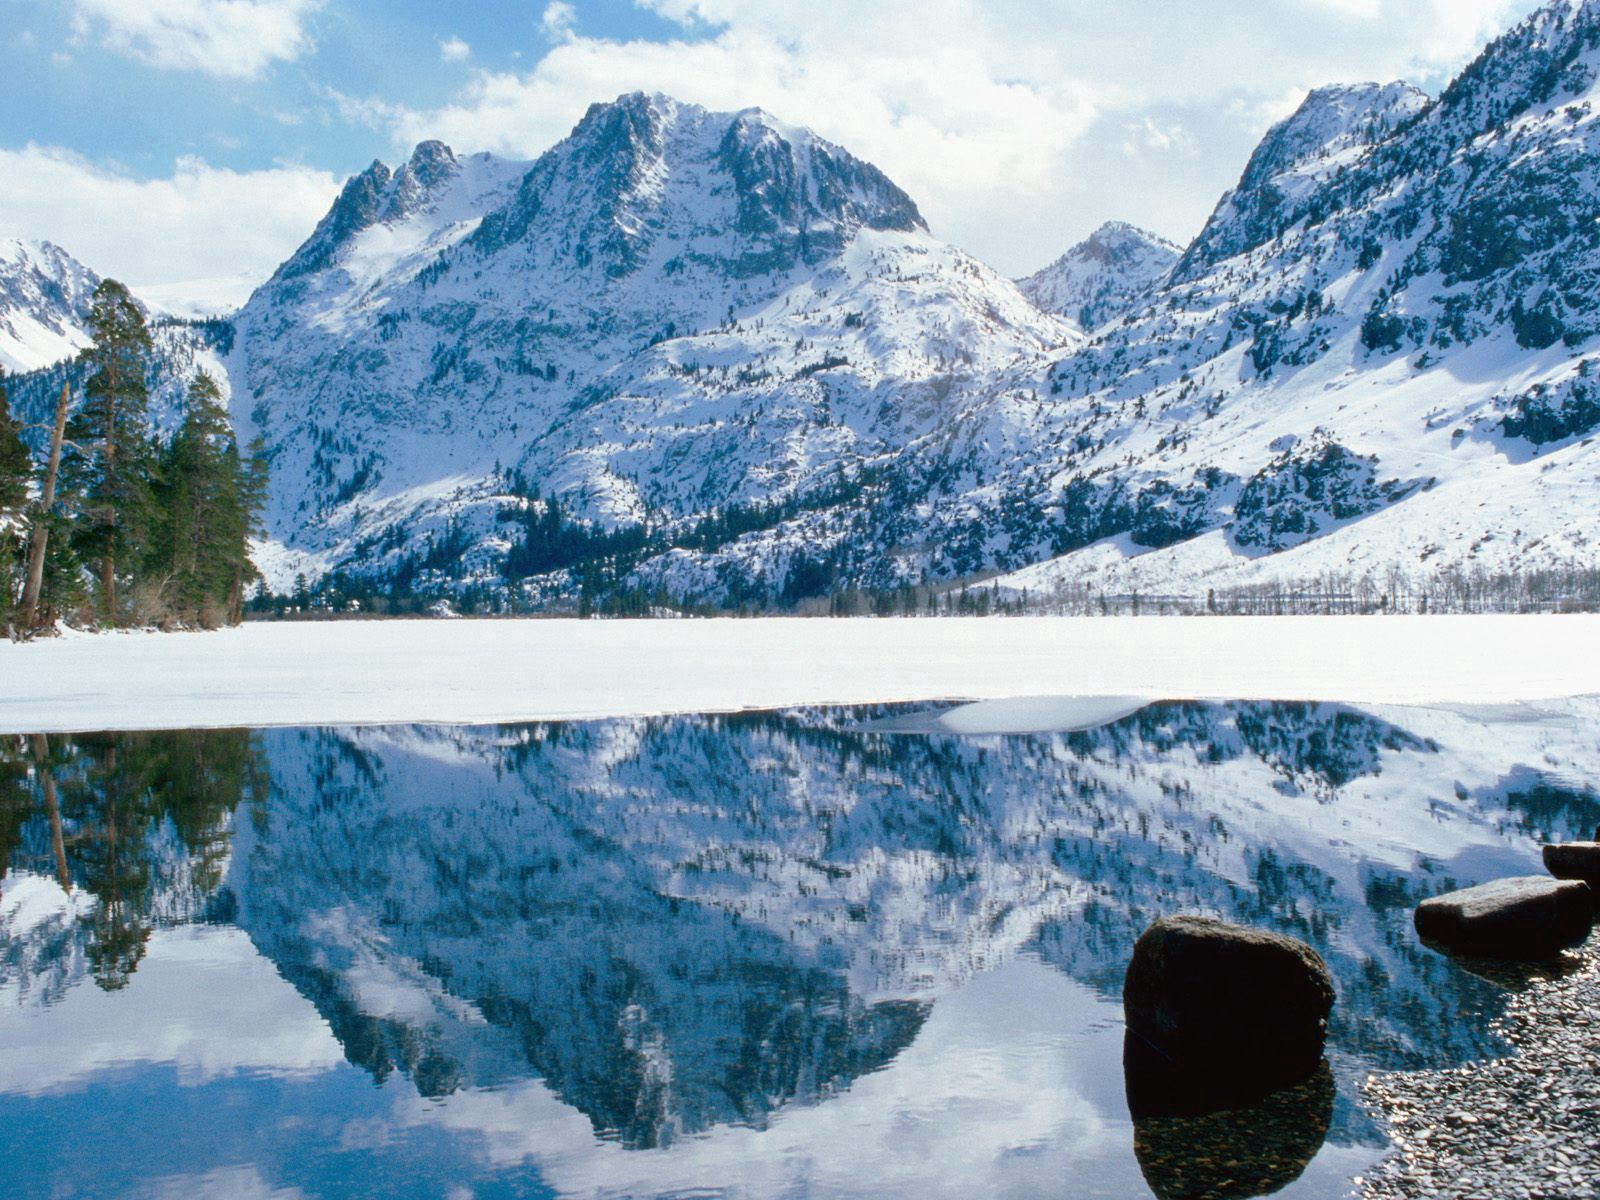 54644 download wallpaper Nature, Nevada, California, Lake, Shore, Bank, Ice, Snow, Stones, Mountains screensavers and pictures for free